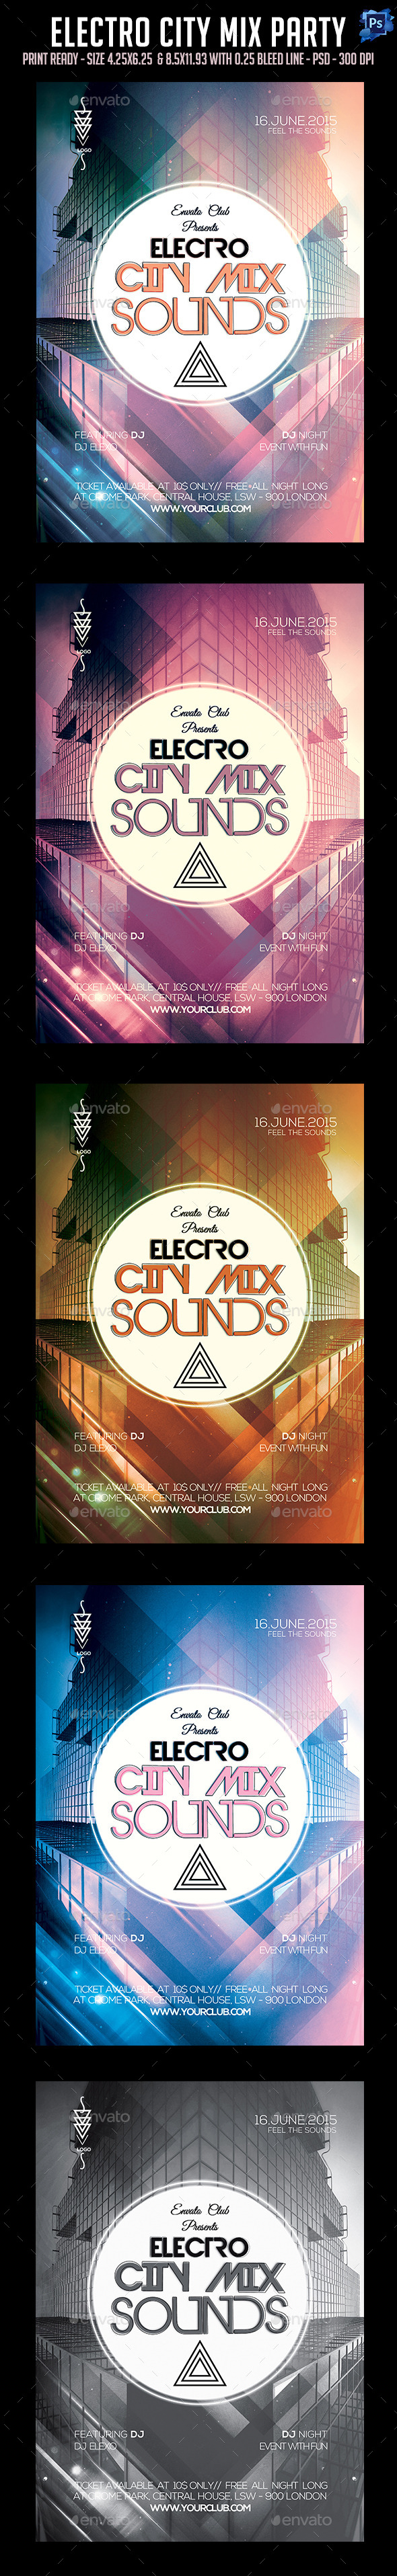 GraphicRiver Electro City Mix Sounds Flyer 11960522